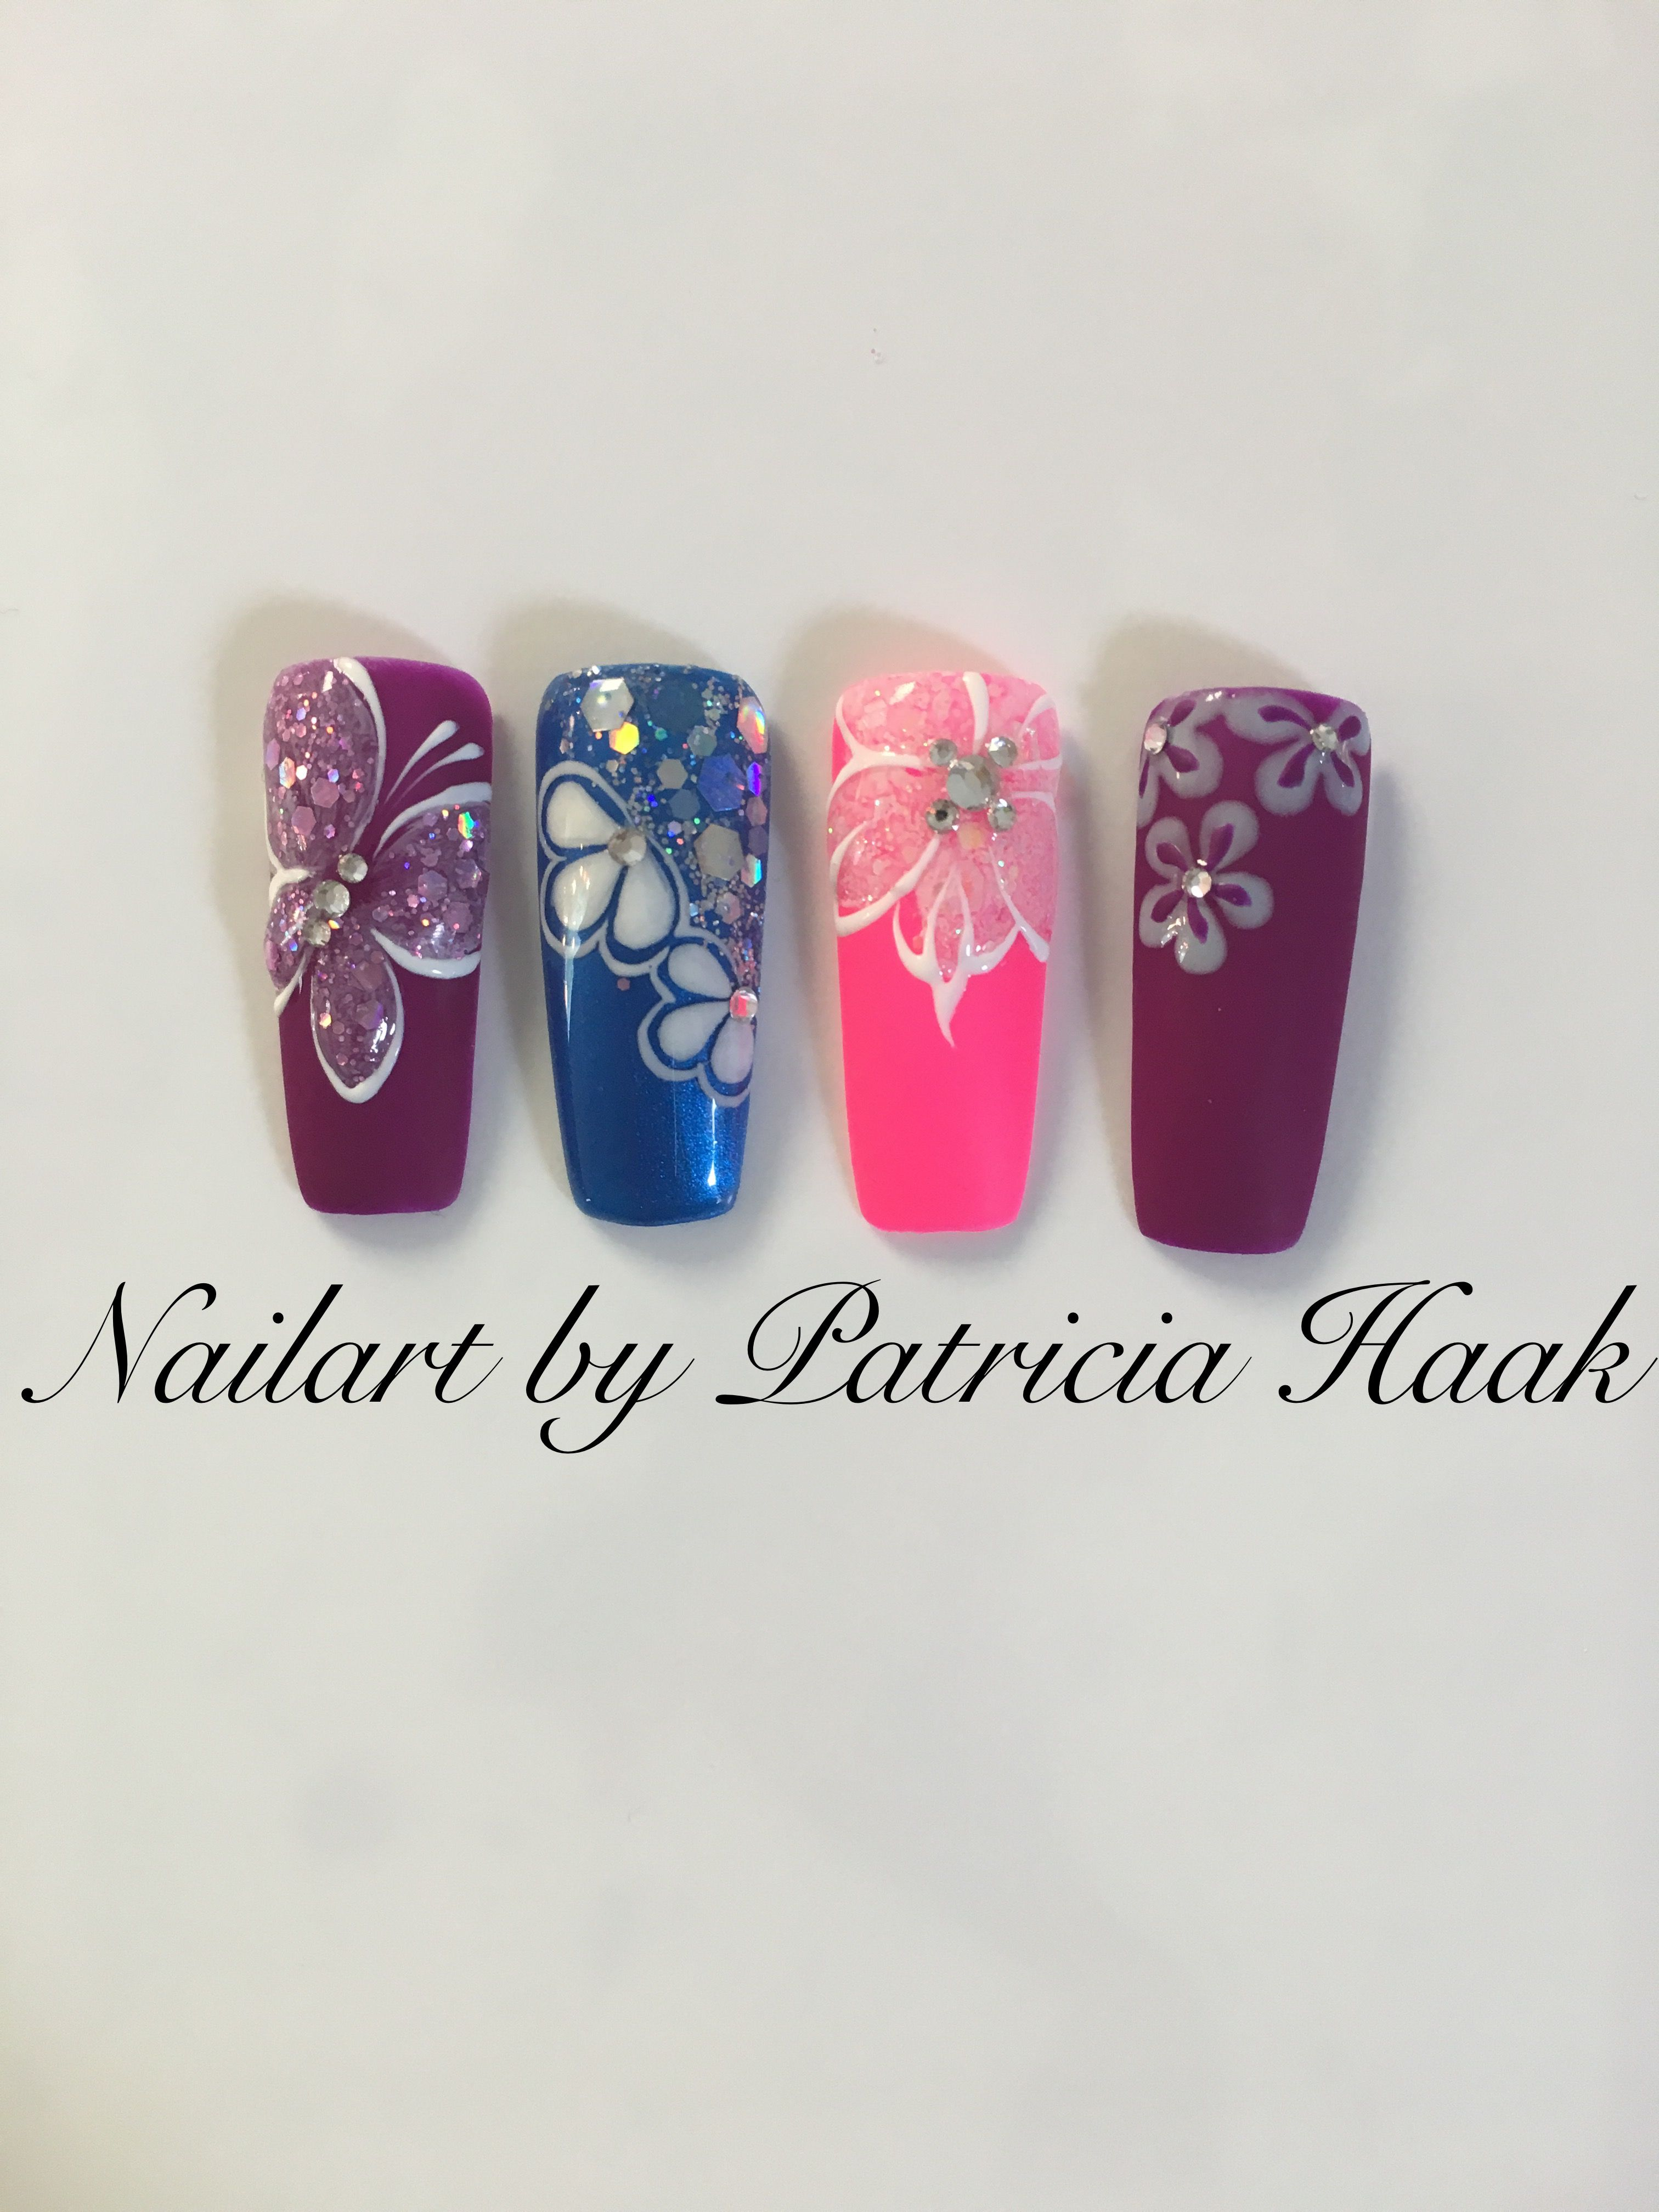 https://m.facebook.com/Nailart-by-Patricia-Haak-779085605532657 ...